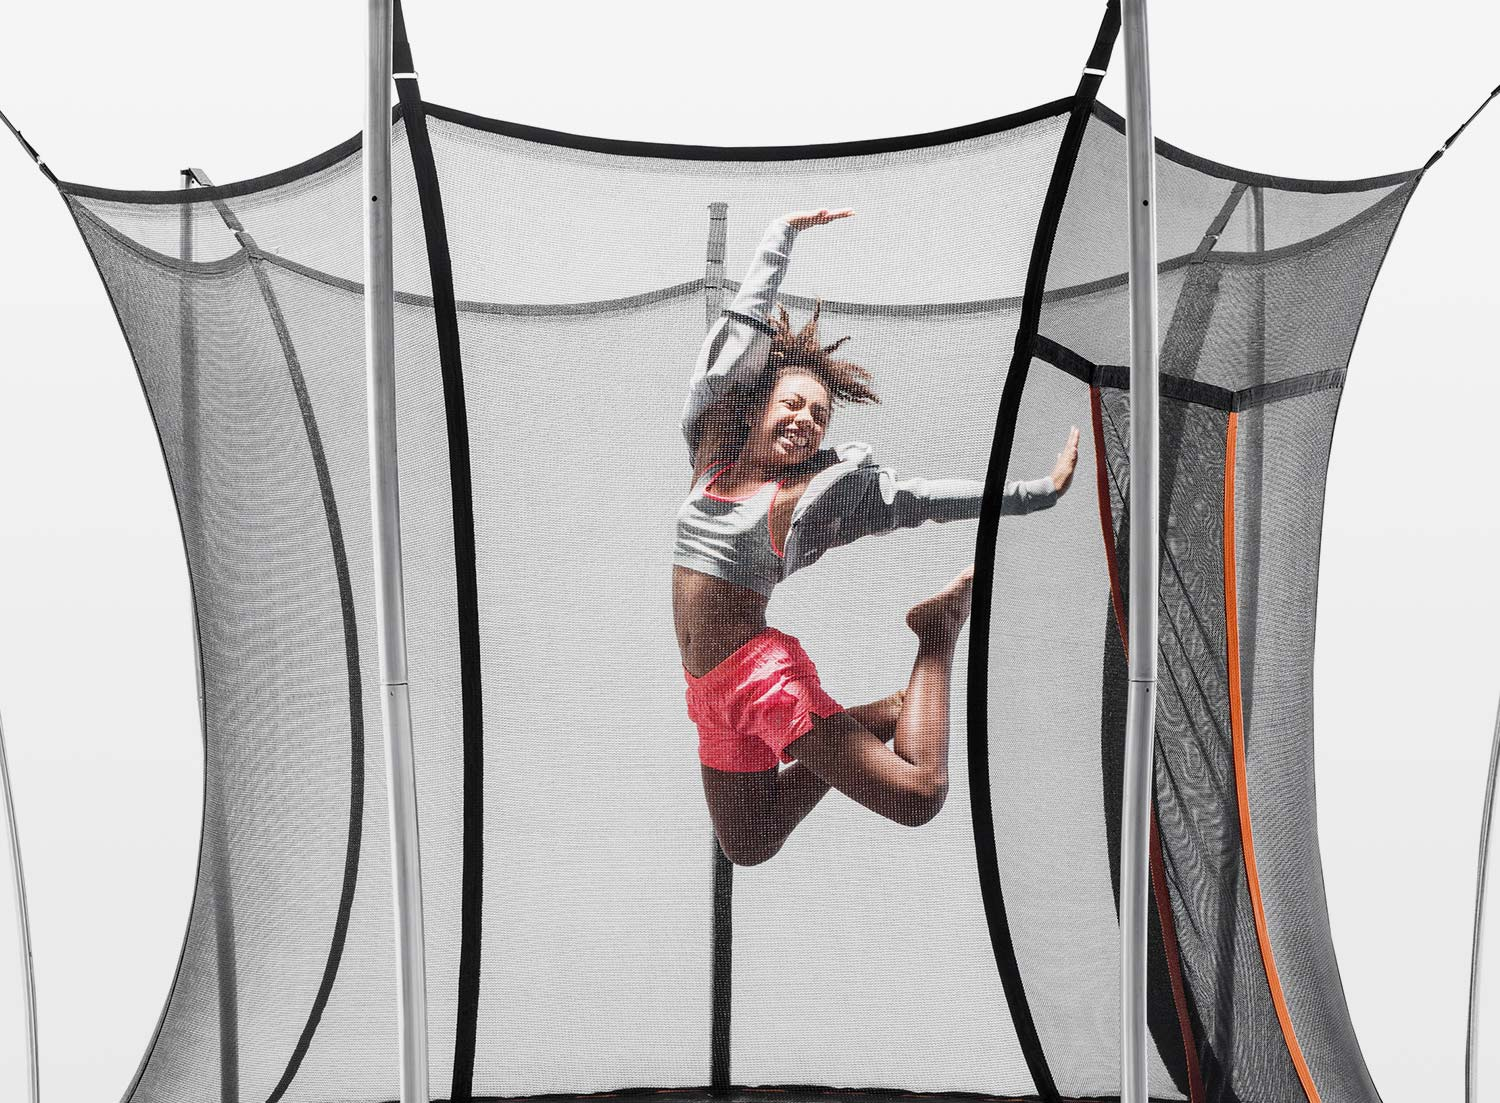 Vuly Pulse speaker for trampolines or swing sets.